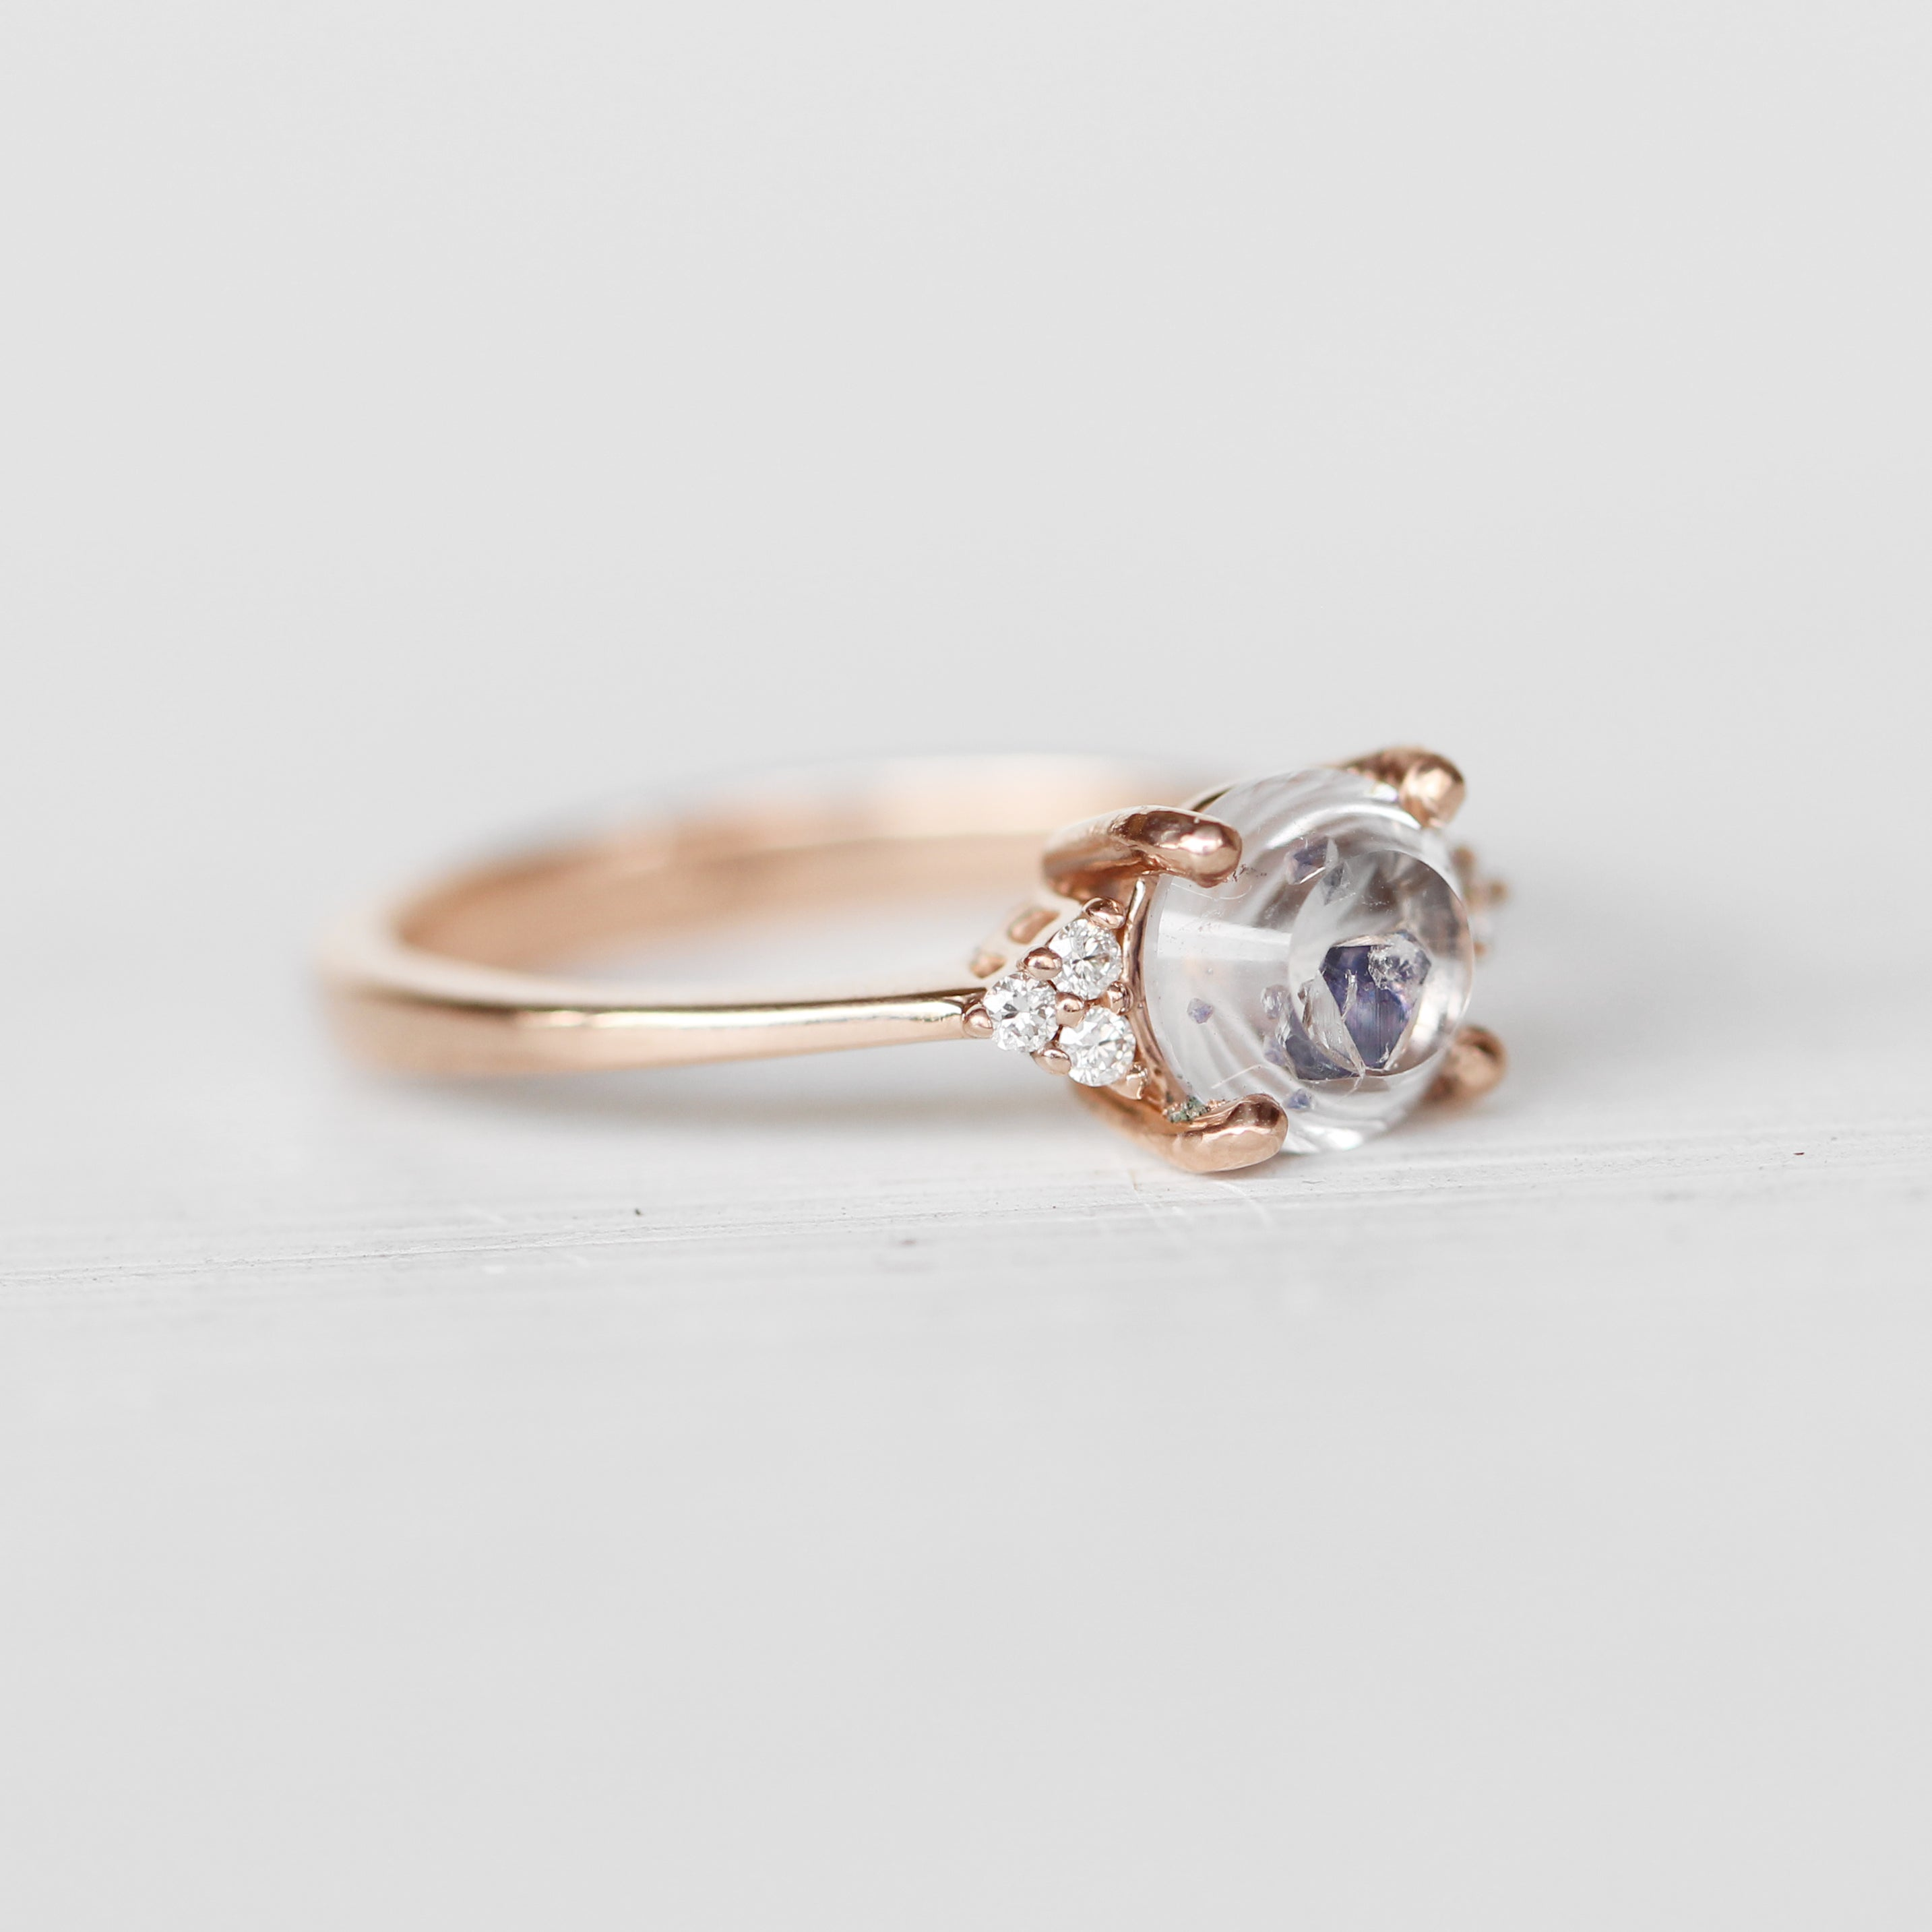 Imogene Ring with a 1.3 ct Fluorite Quartz in 14k Rose Gold - Ready to Size and Ship - Celestial Diamonds ® by Midwinter Co.